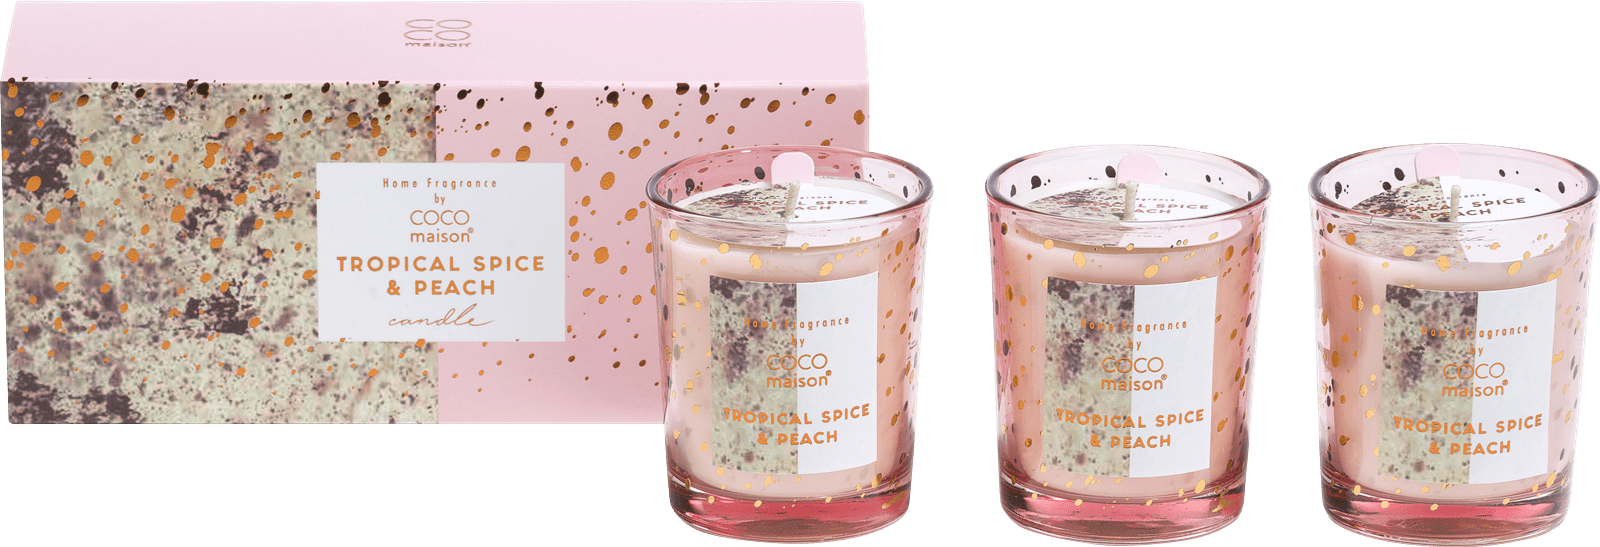 Coco Maison - box with 3 scented candles tropical spice & peach